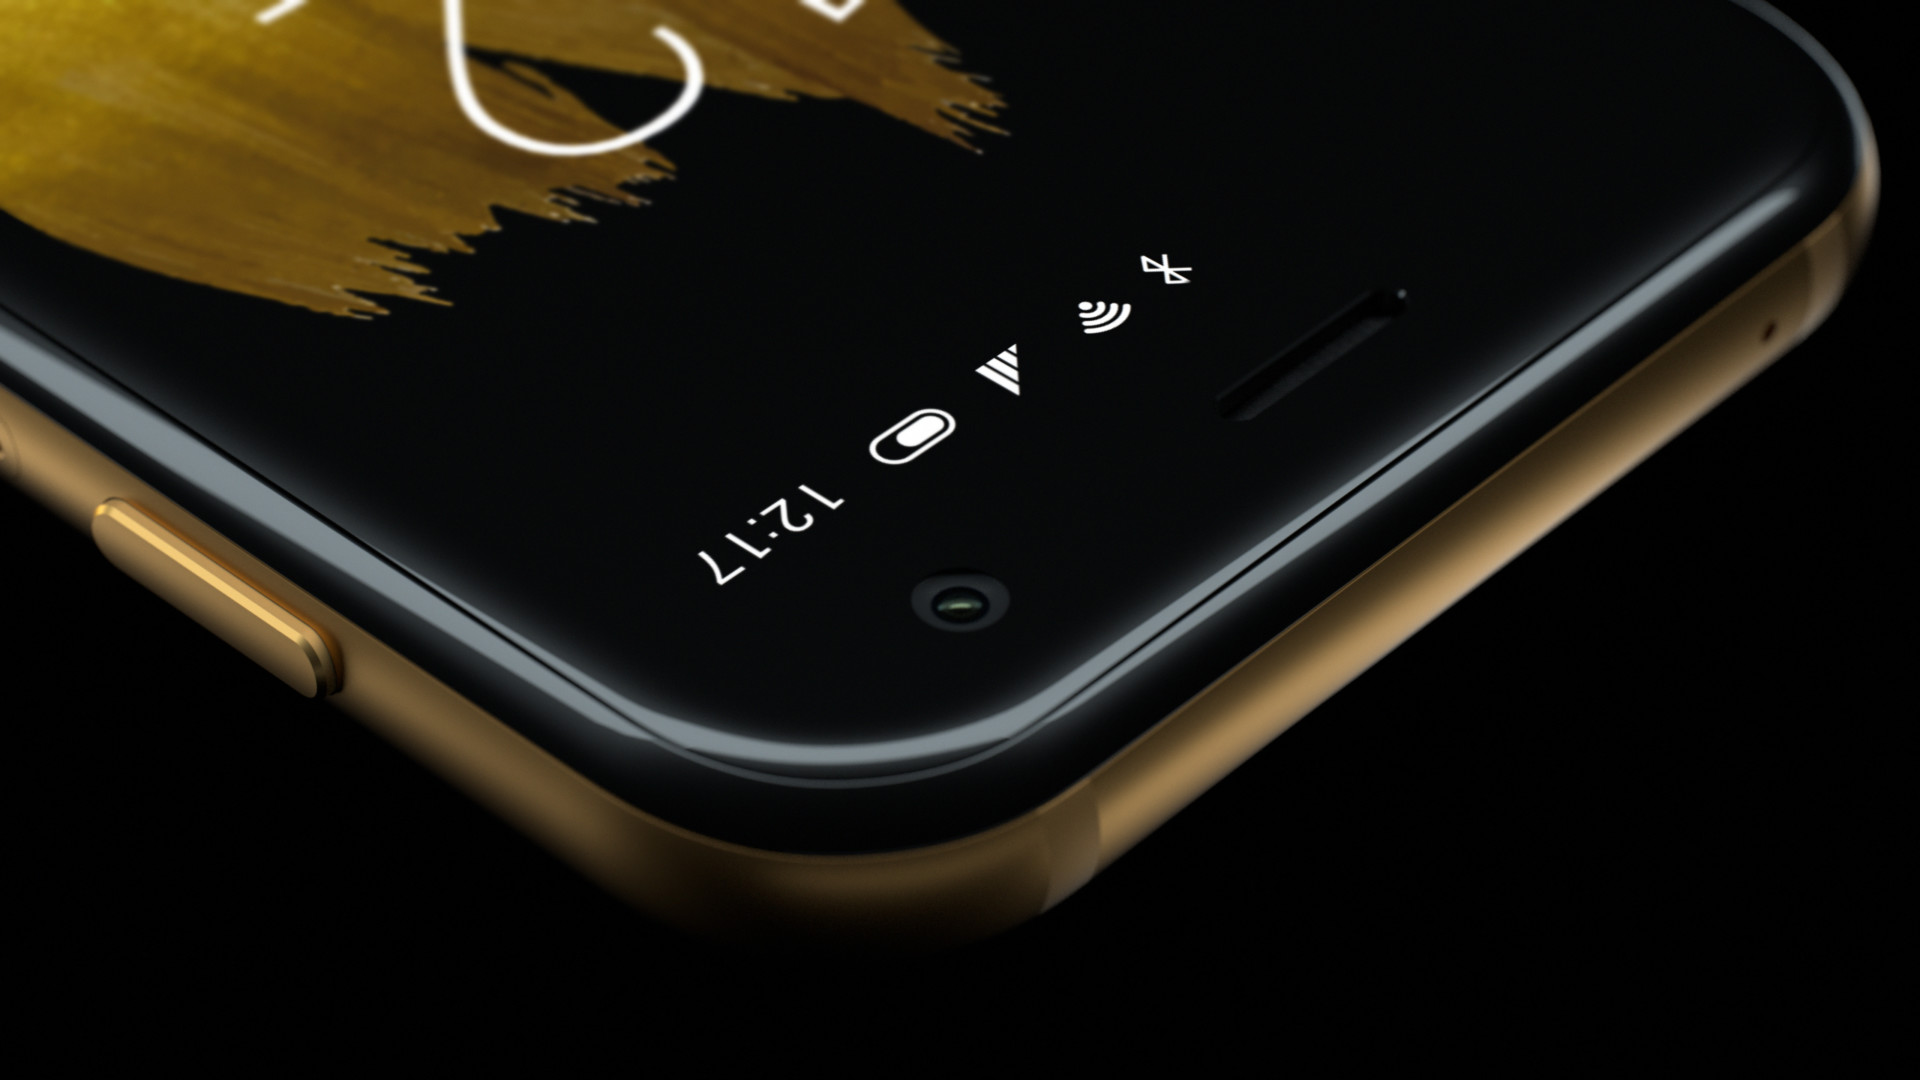 A promotional image of the 2018 Verizon Palm phone.